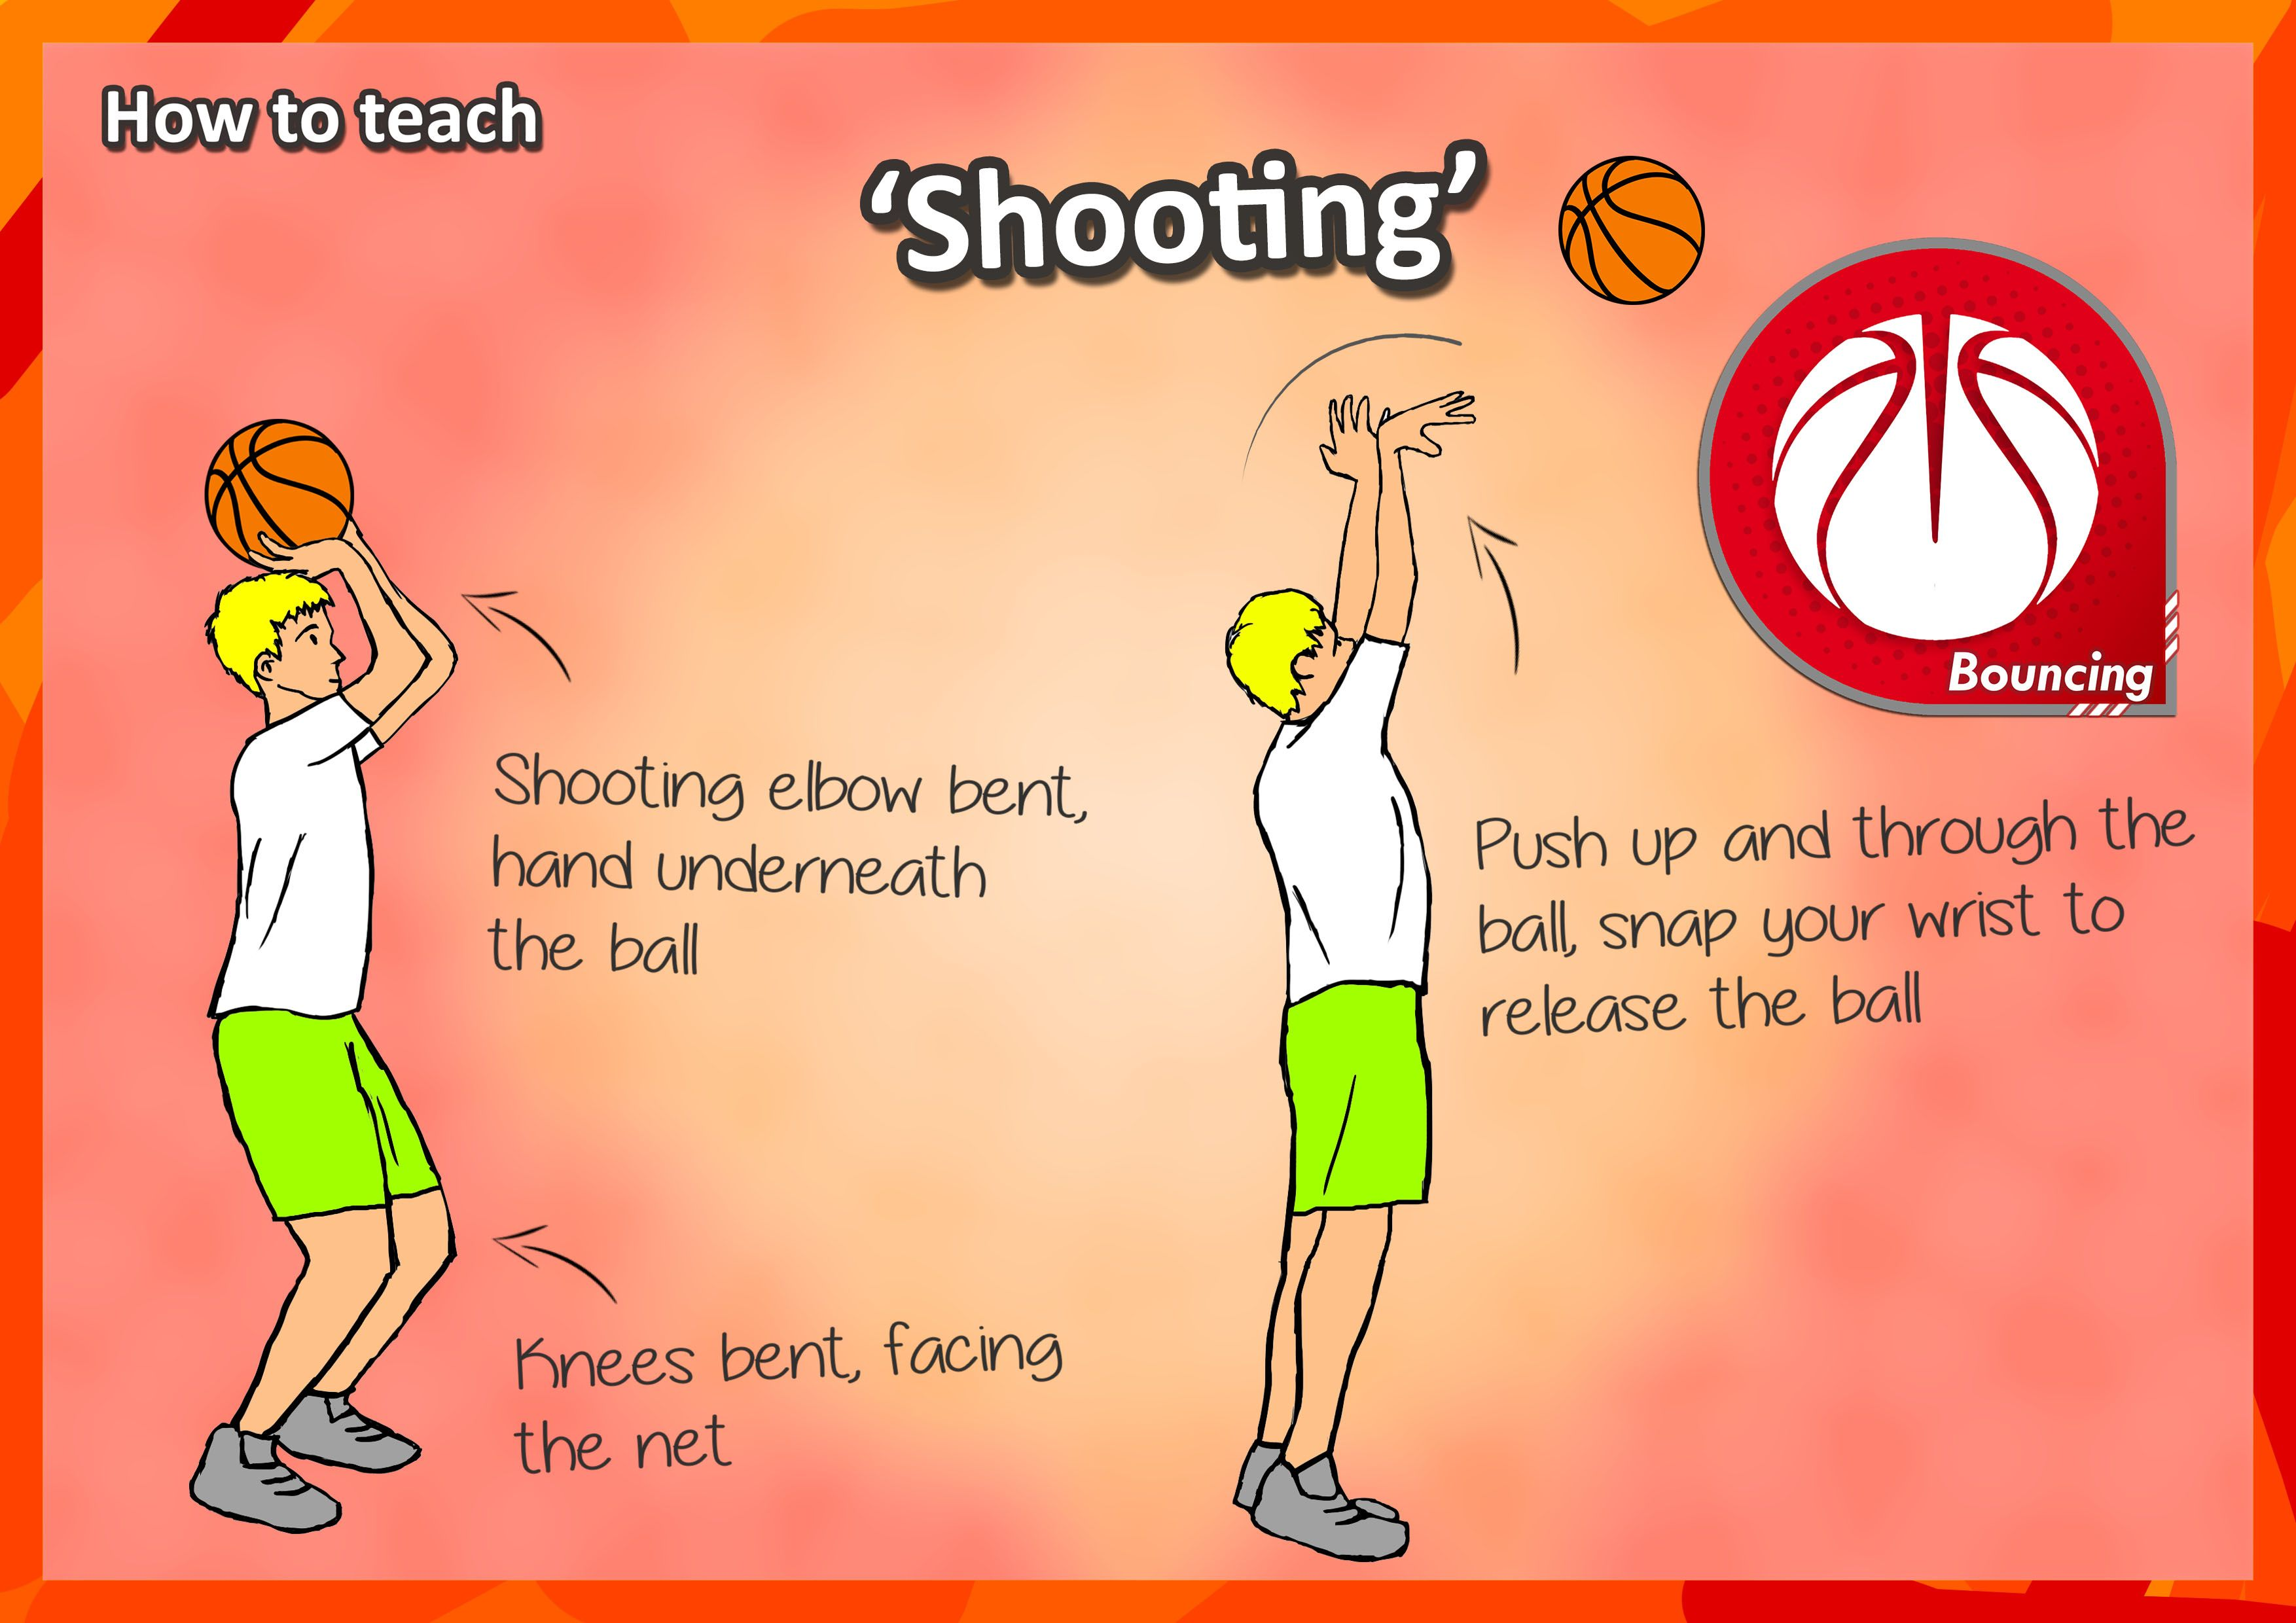 How To Teach The Bouncing Skills Key Cues For Basketball Dribbling And Control Basketball Workouts Basketball Drills For Kids Basketball Drills